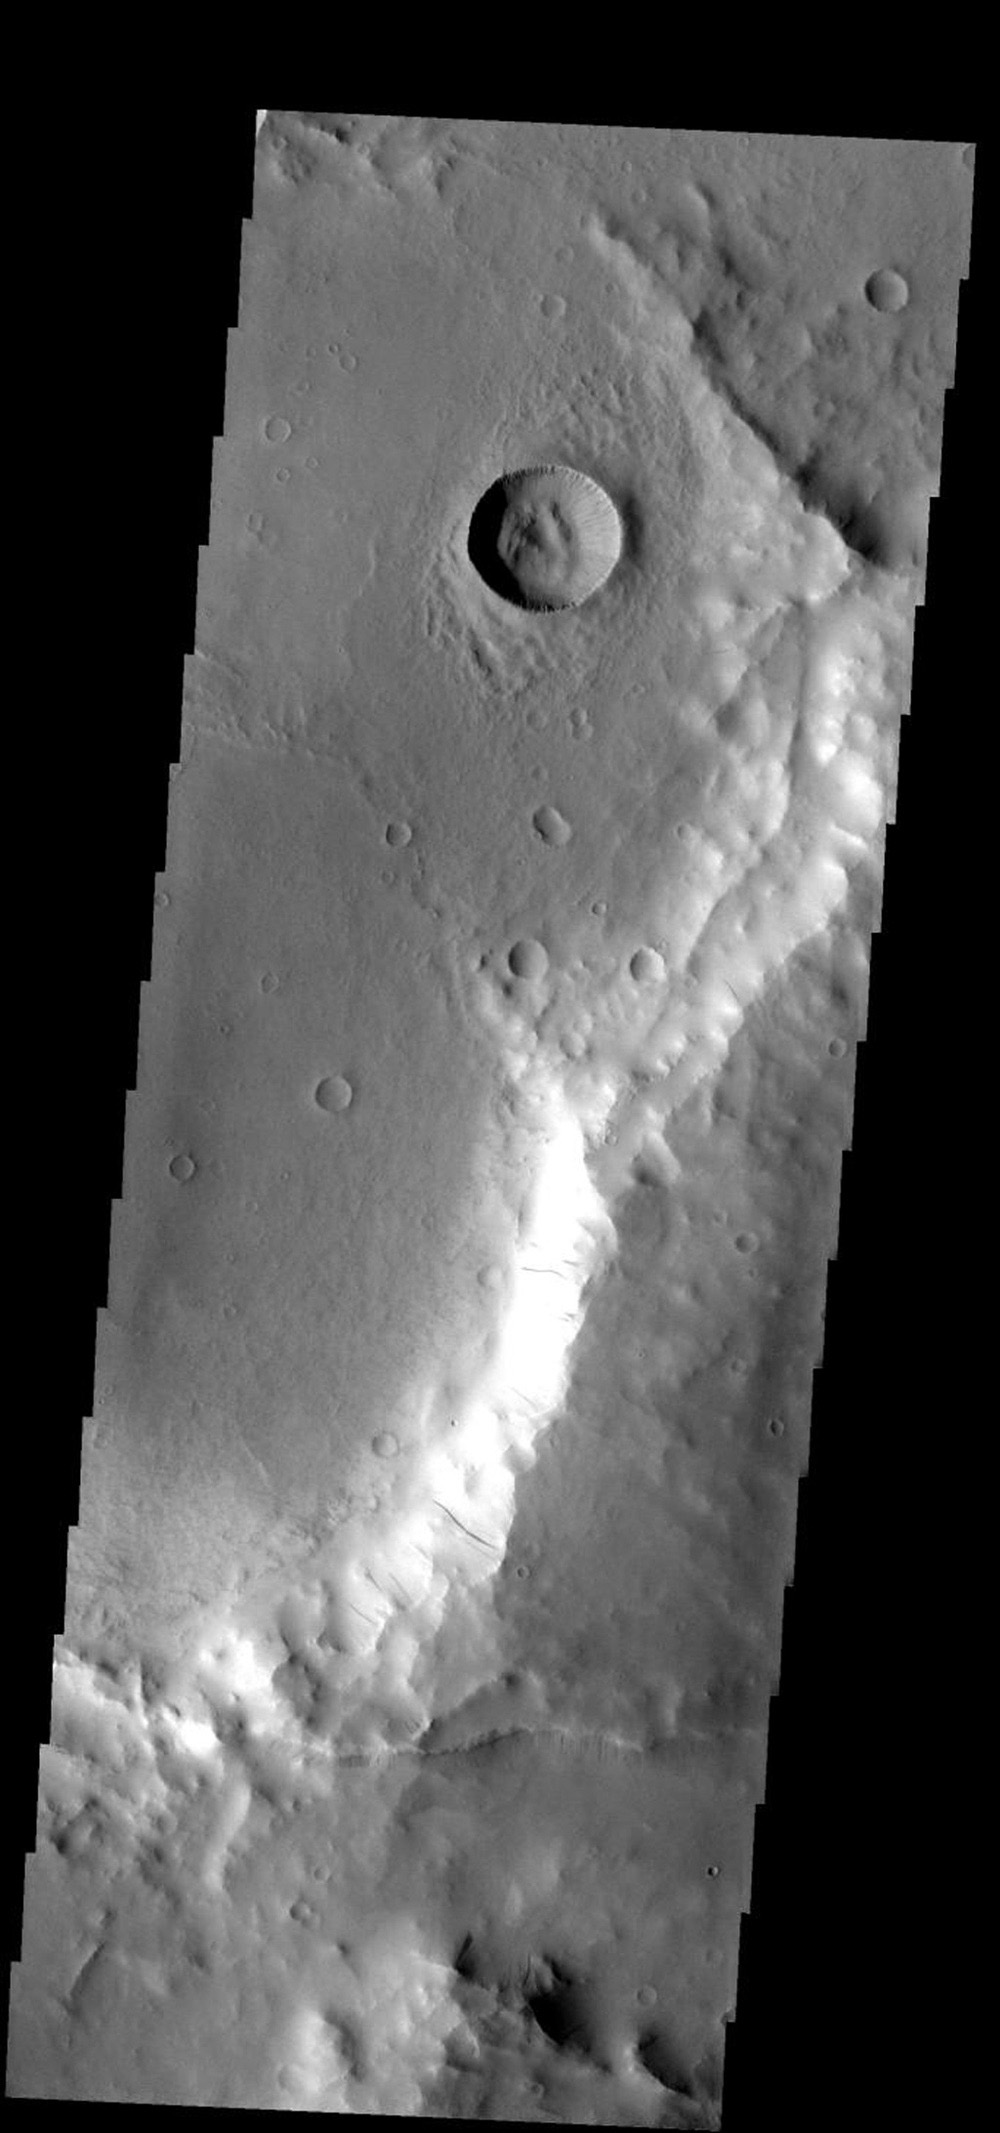 These dust avalanches occur in a crater within Iani Chaos on Mars as seen by NASA's 2001 Mars Odyssey spacecraft.